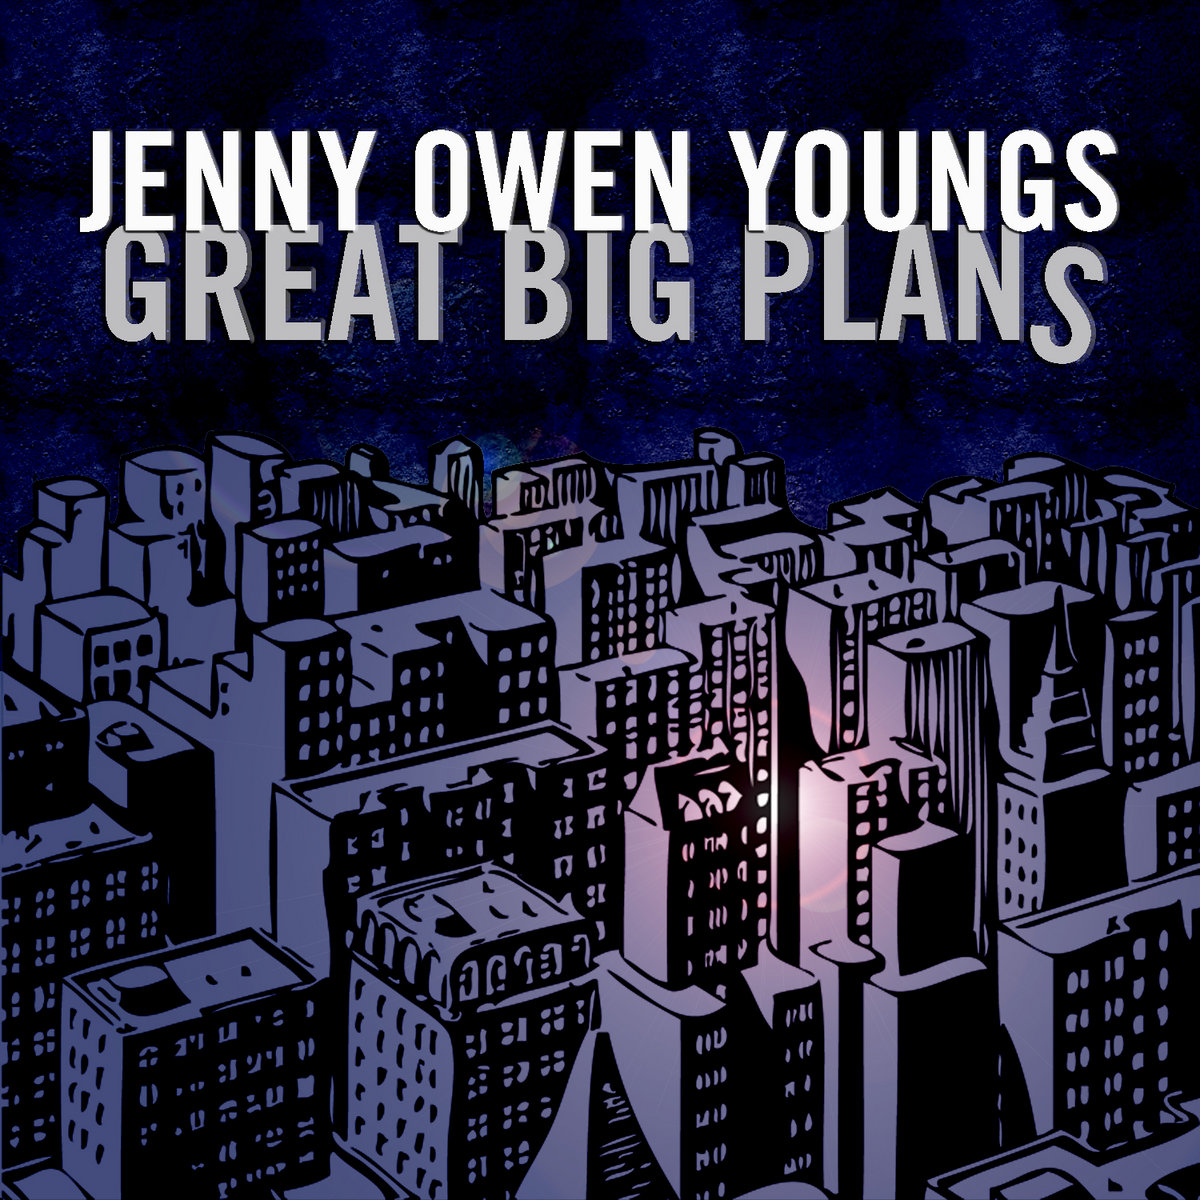 Great Big Plans >> Great Big Plans Jenny Owen Youngs